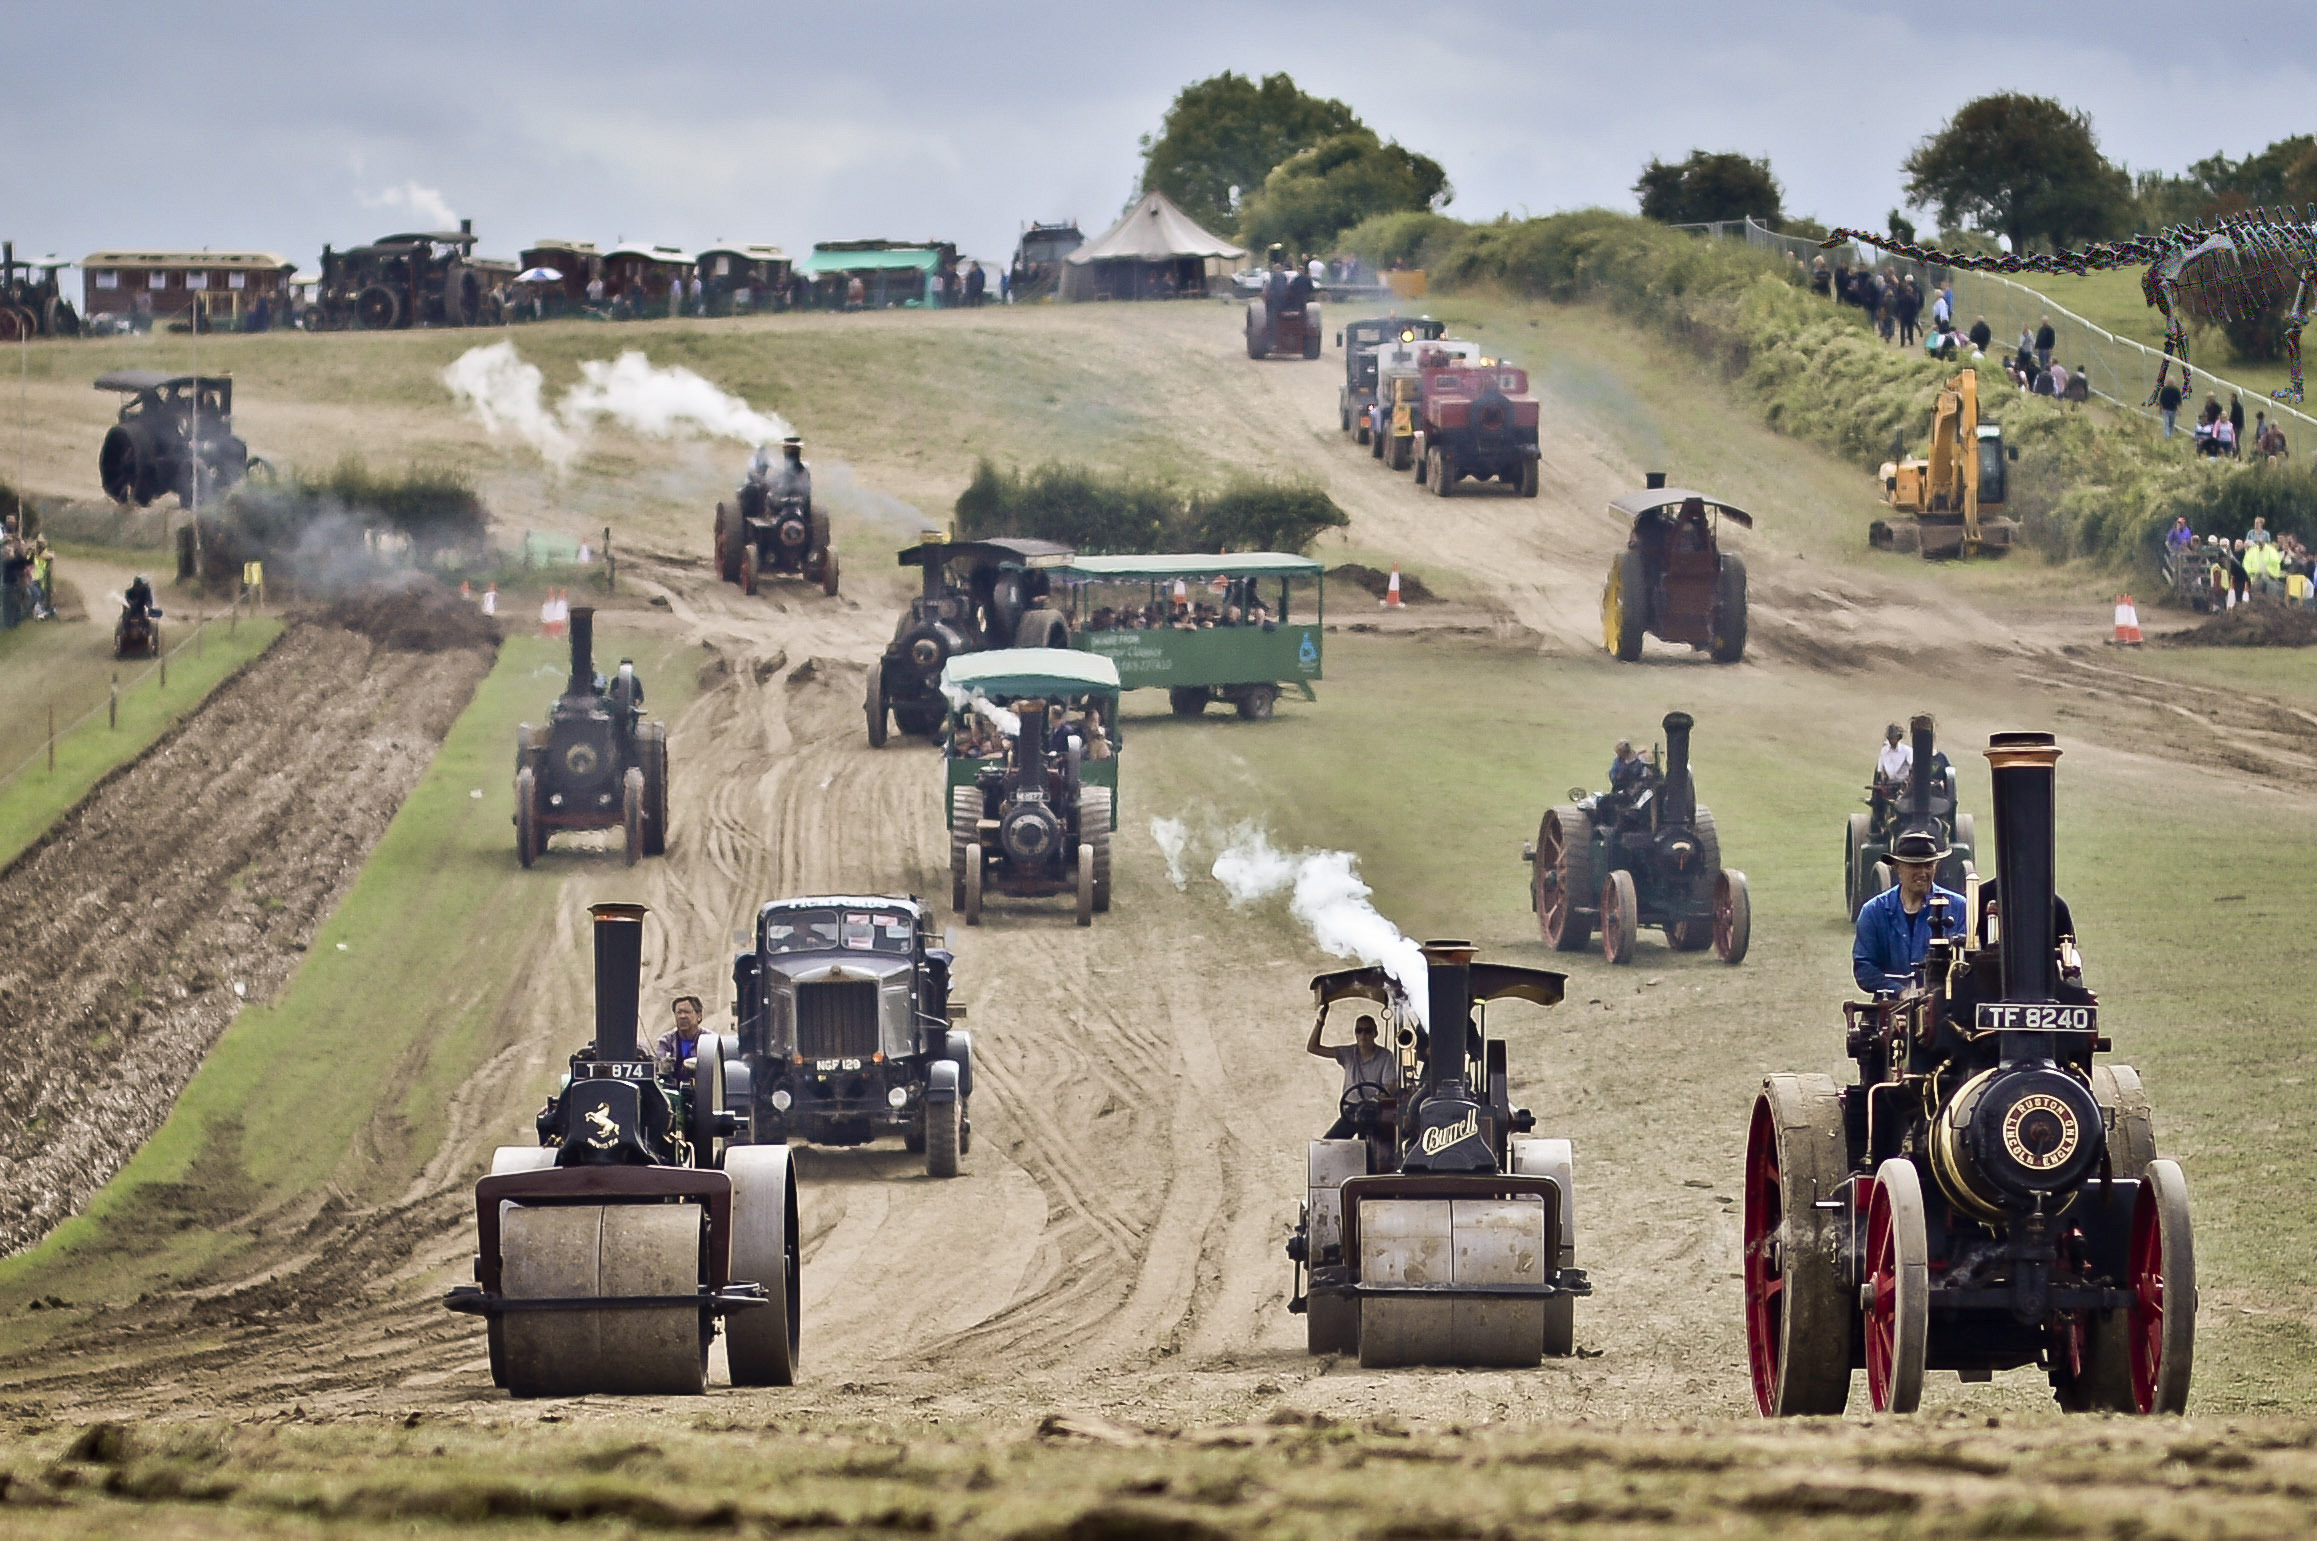 Traction engines, road rollers and other steam powered vehicles make their way around the main arena at the Great Dorset Steam Fair